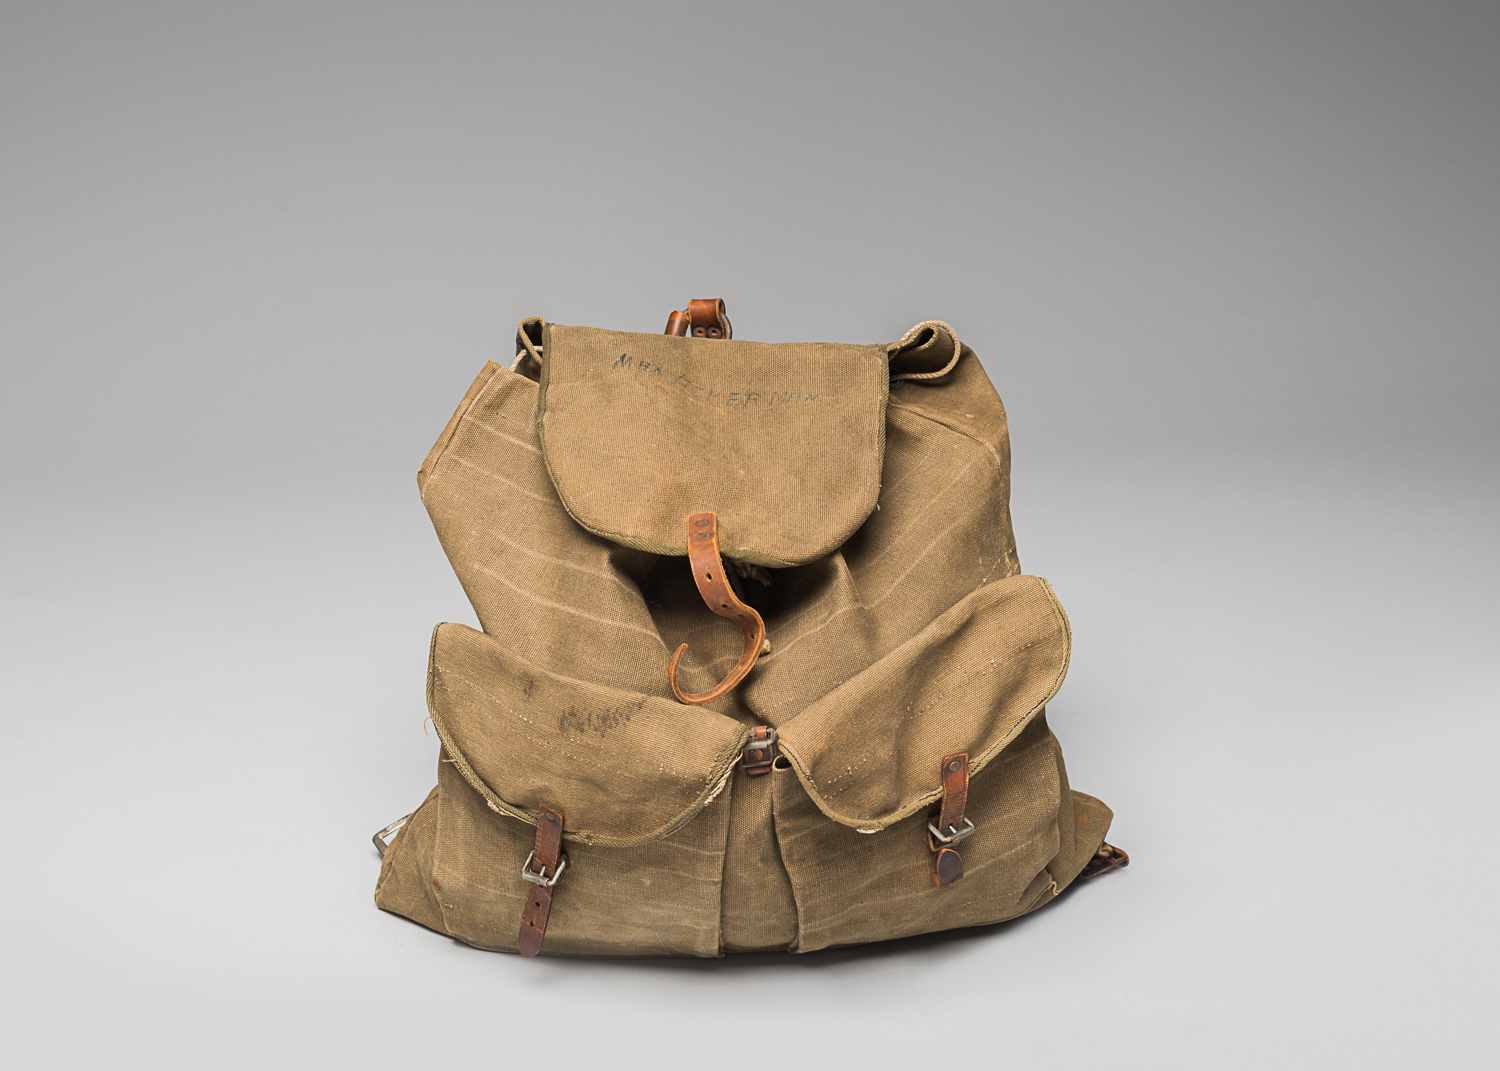 Knapsack that belonged to Joseph Wyshynski while he was exiled in the Soviet Union. Before he left from Lodz to join a Polish resistance group, Joseph's mother filled it with food and clothing. (Photo: Peter Berra)